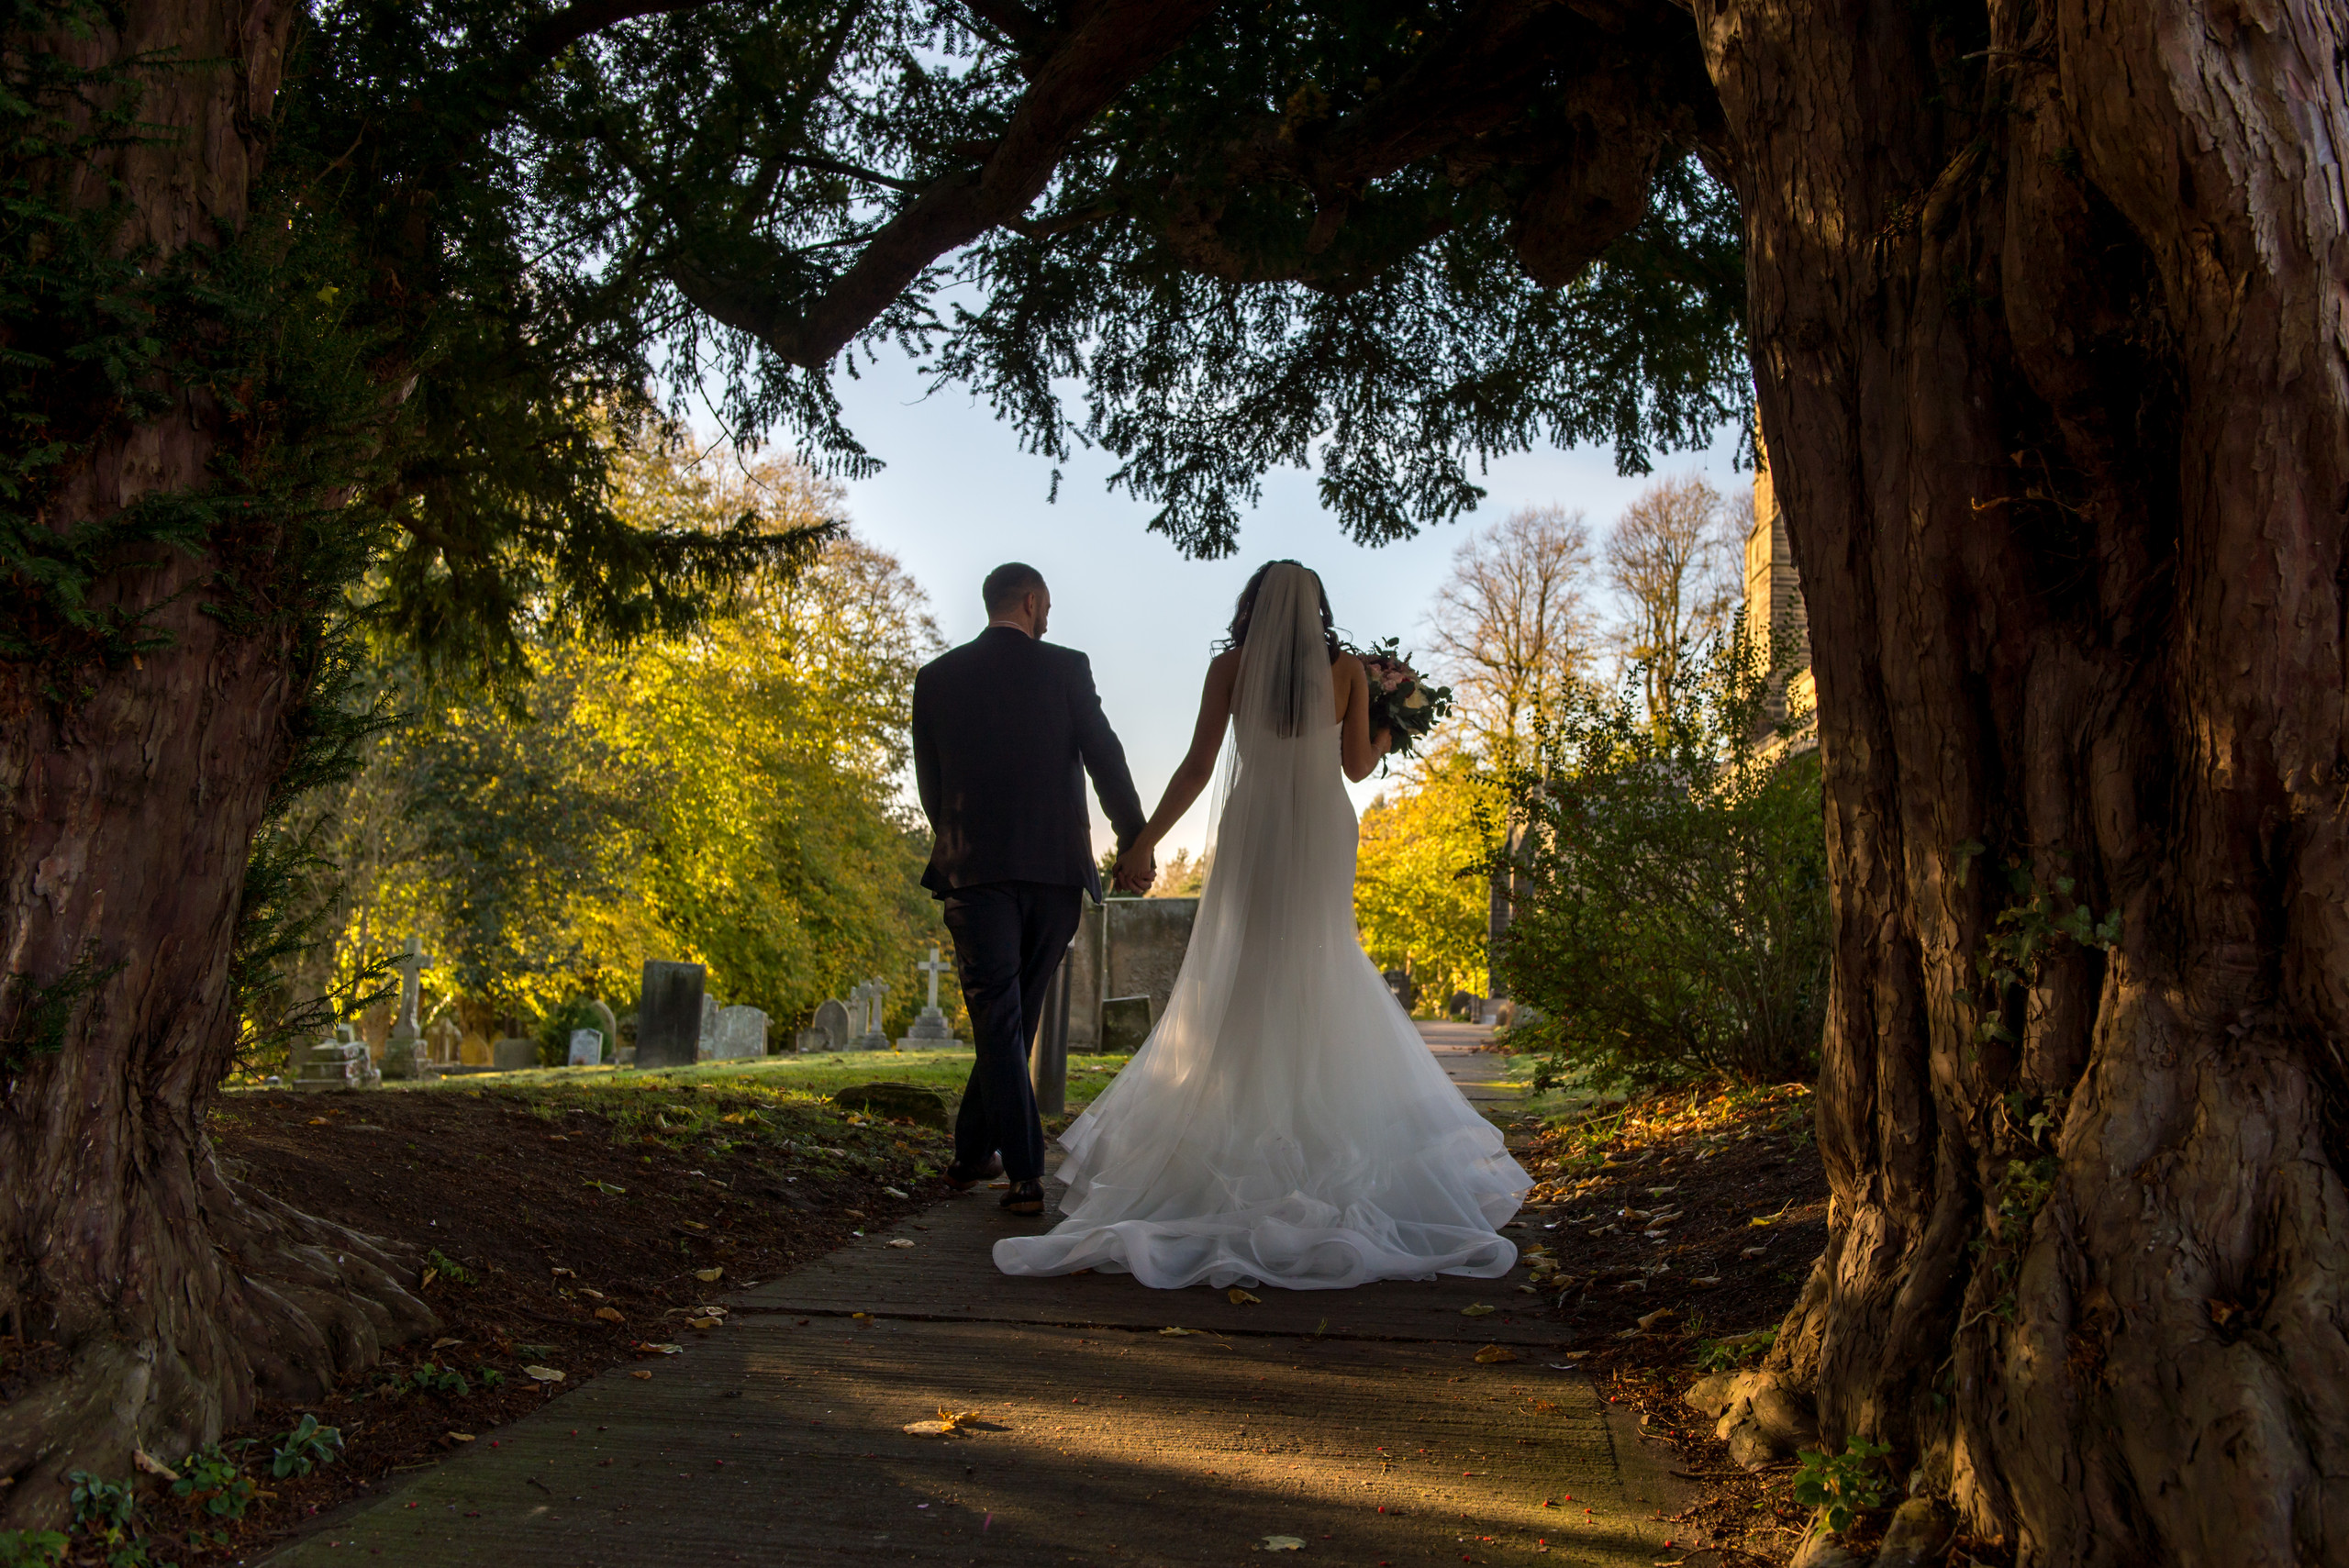 Photograph of relaxed bride and groom walking down pathway of church after wedding day ceremony